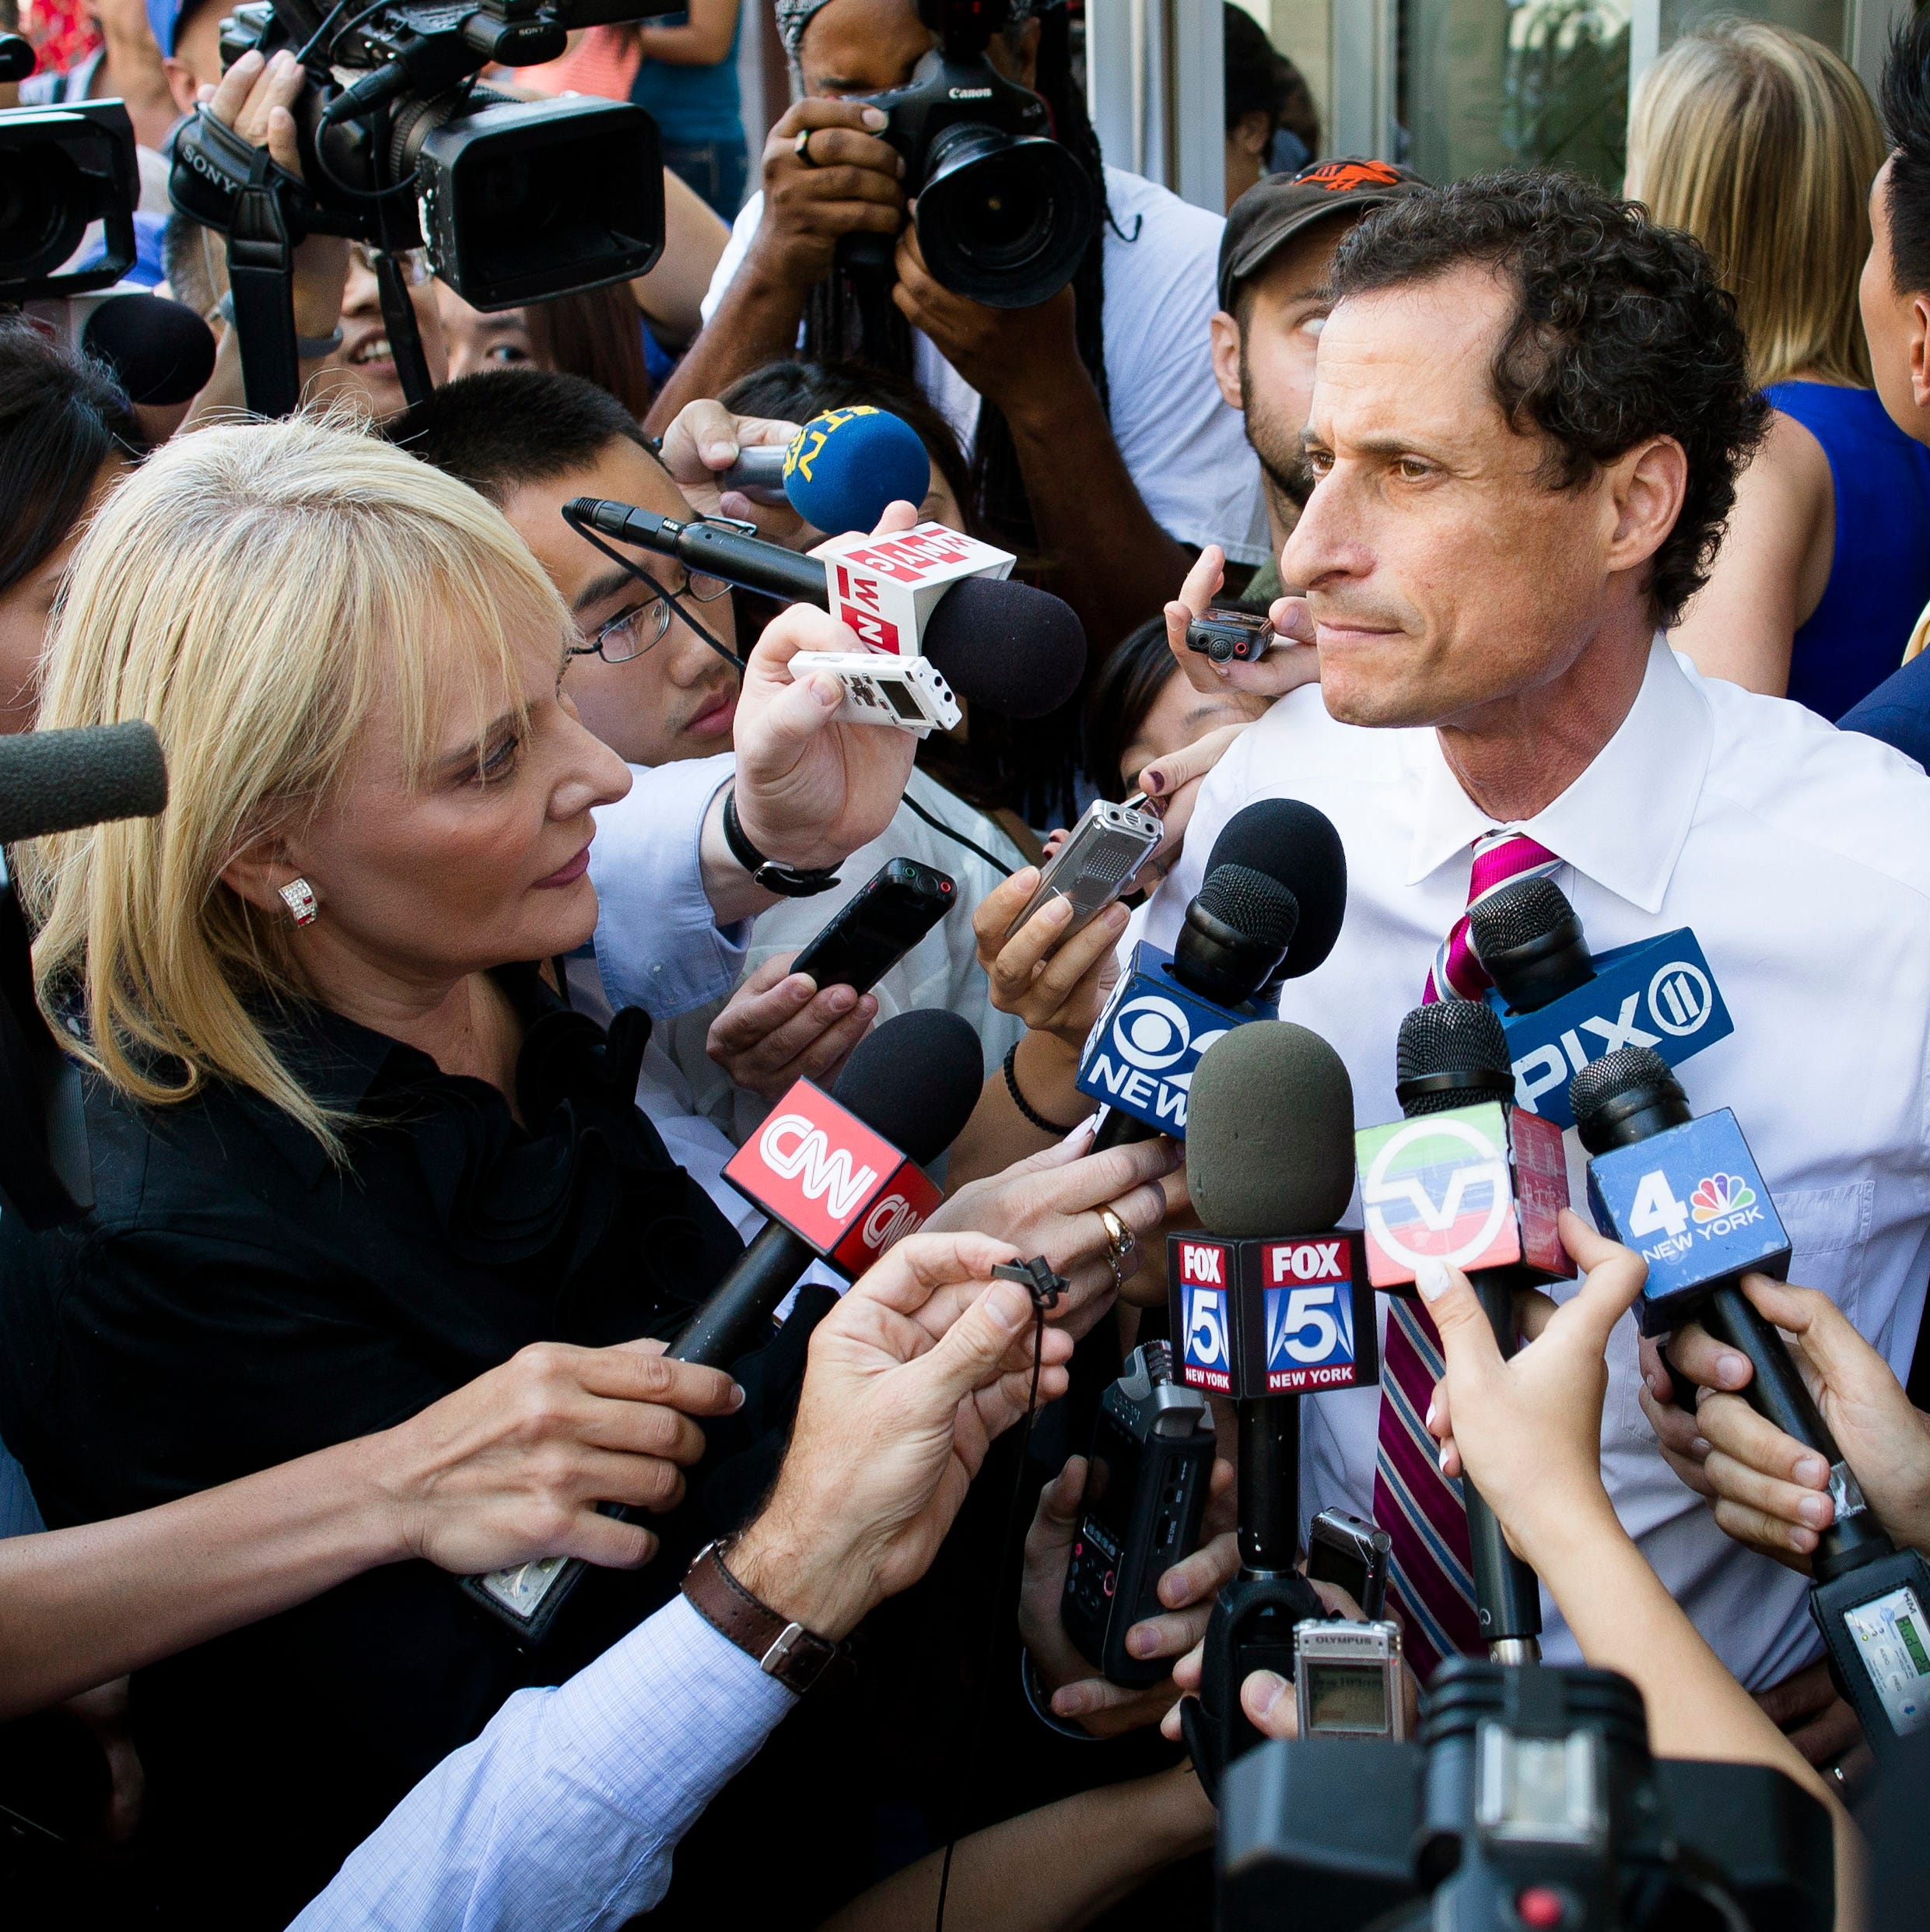 New York City mayoral candidate Anthony Weiner speaks to reporters after a campaign event in Queens in July.